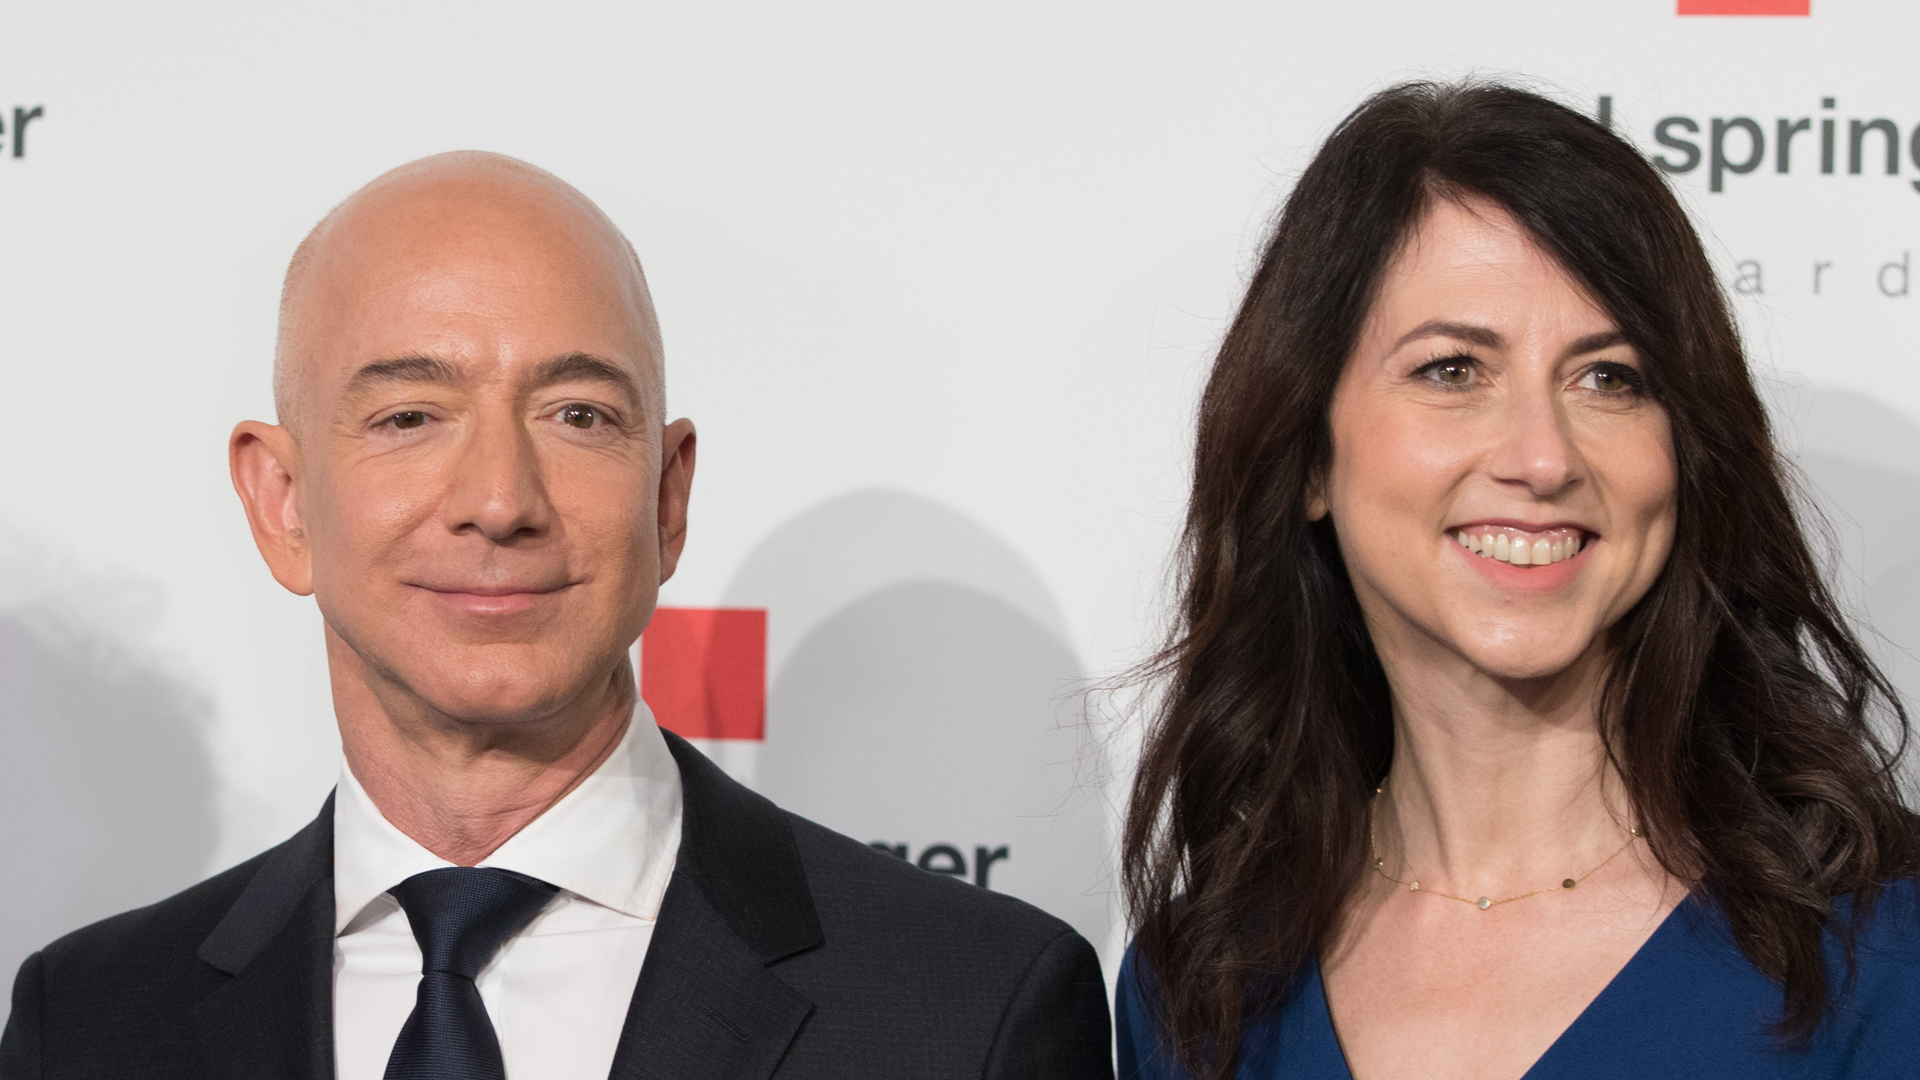 Amazon CEO Jeff Bezos and his wife MacKenzie Bezos poses as they arrive at the headquarters of publisher Axel-Springer in Berlin on April 24, 2018. (Credit: Jorg Carstensen/AFP/Getty Images)